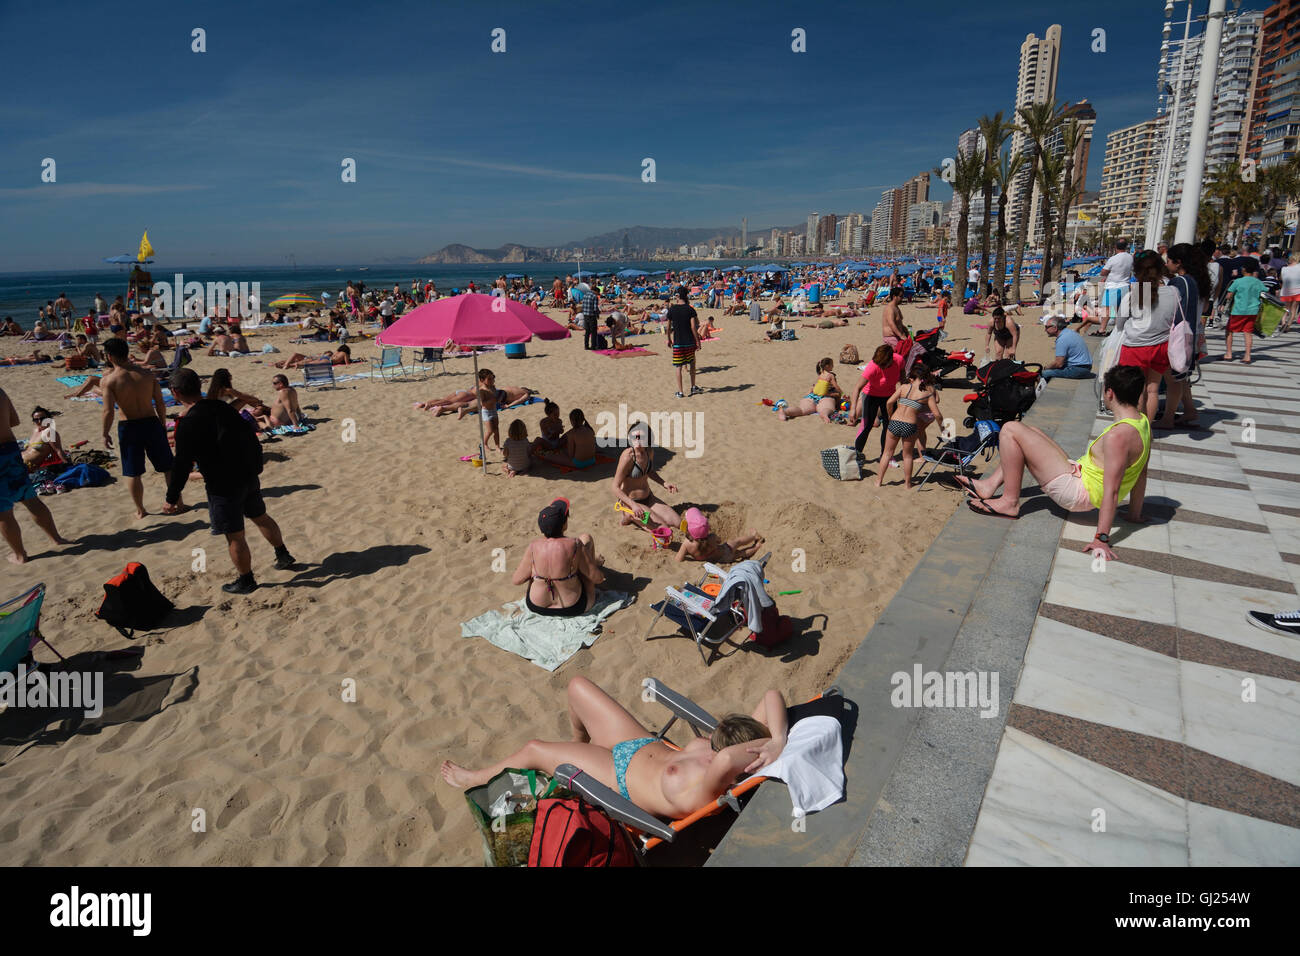 Spain, Benidorm, Levante beach, sunbathers and high-rise buildings in the background - Stock Image